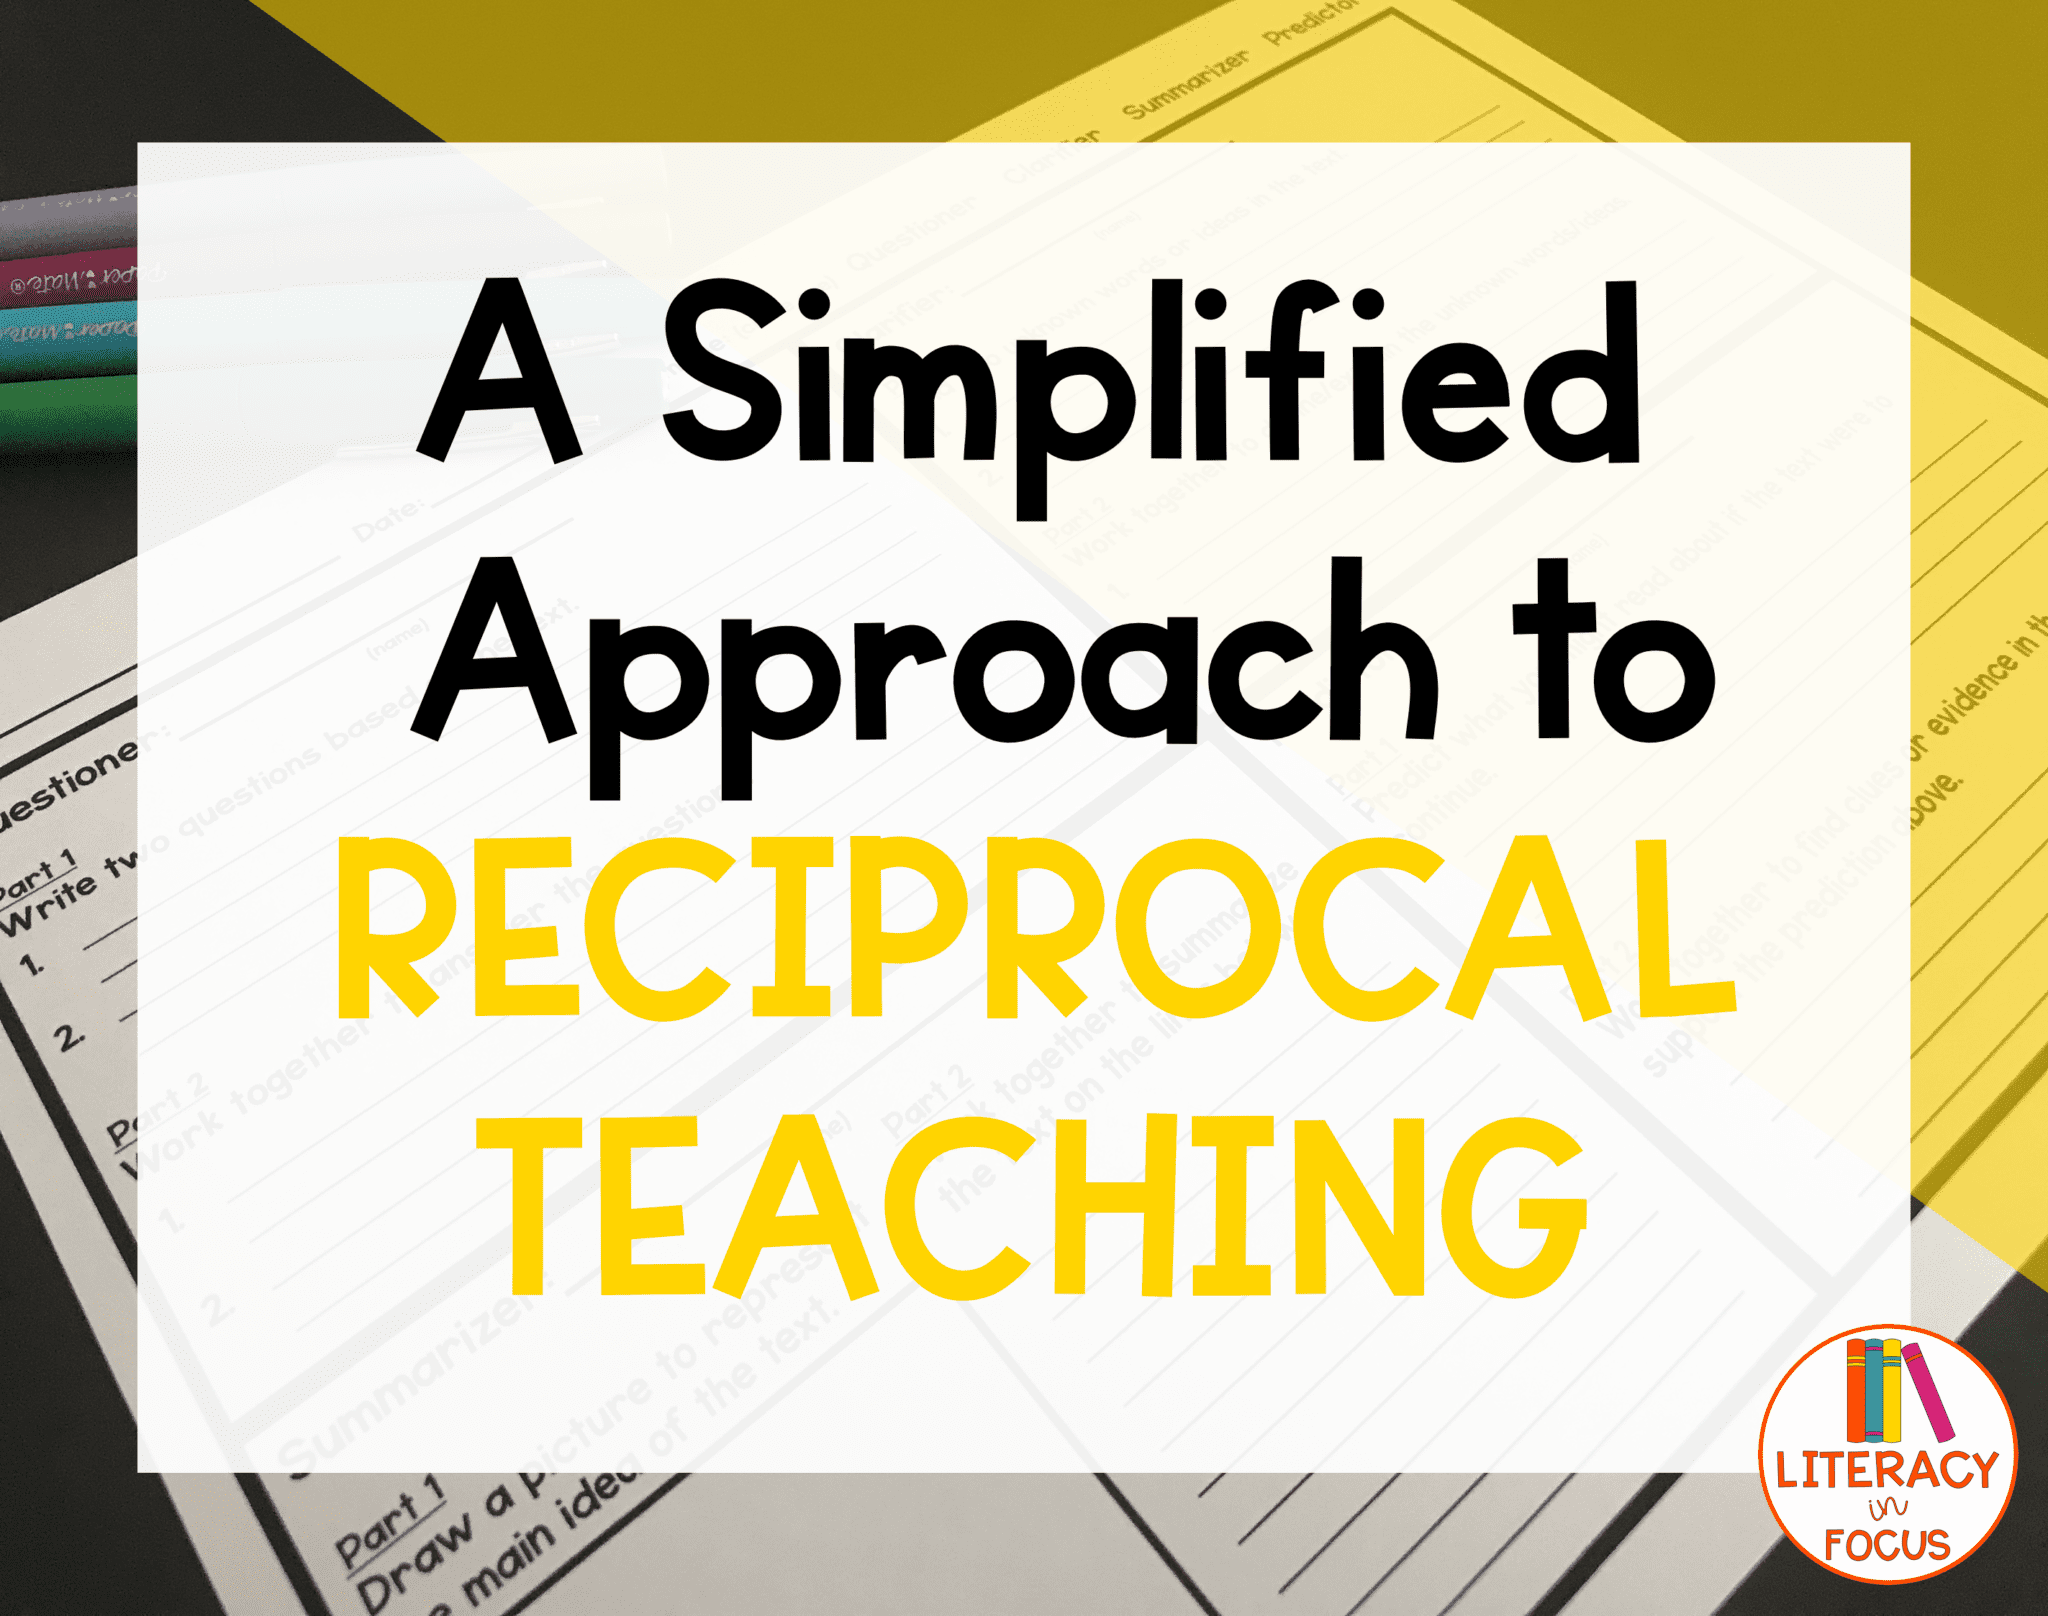 A Simplified Approach To Reciprocal Teaching